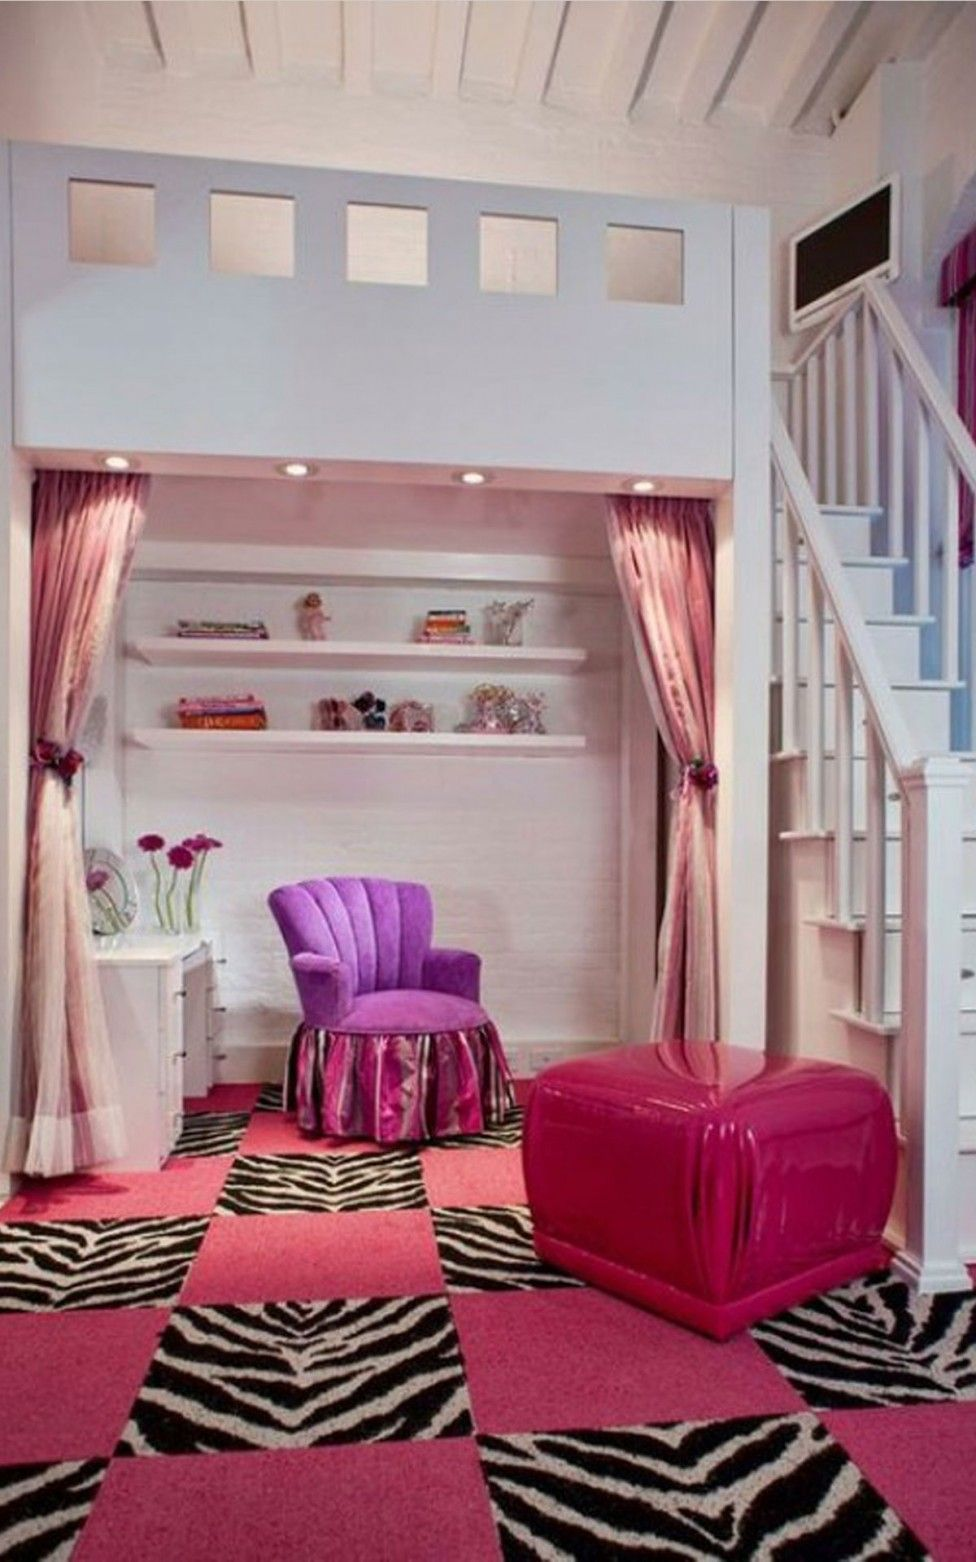 Bedroom ideas for teenage girls purple and pink - Small Room Ideas For Girls With Cute Color Bedroom 22 Pretty Girls Room Design Room Layouts